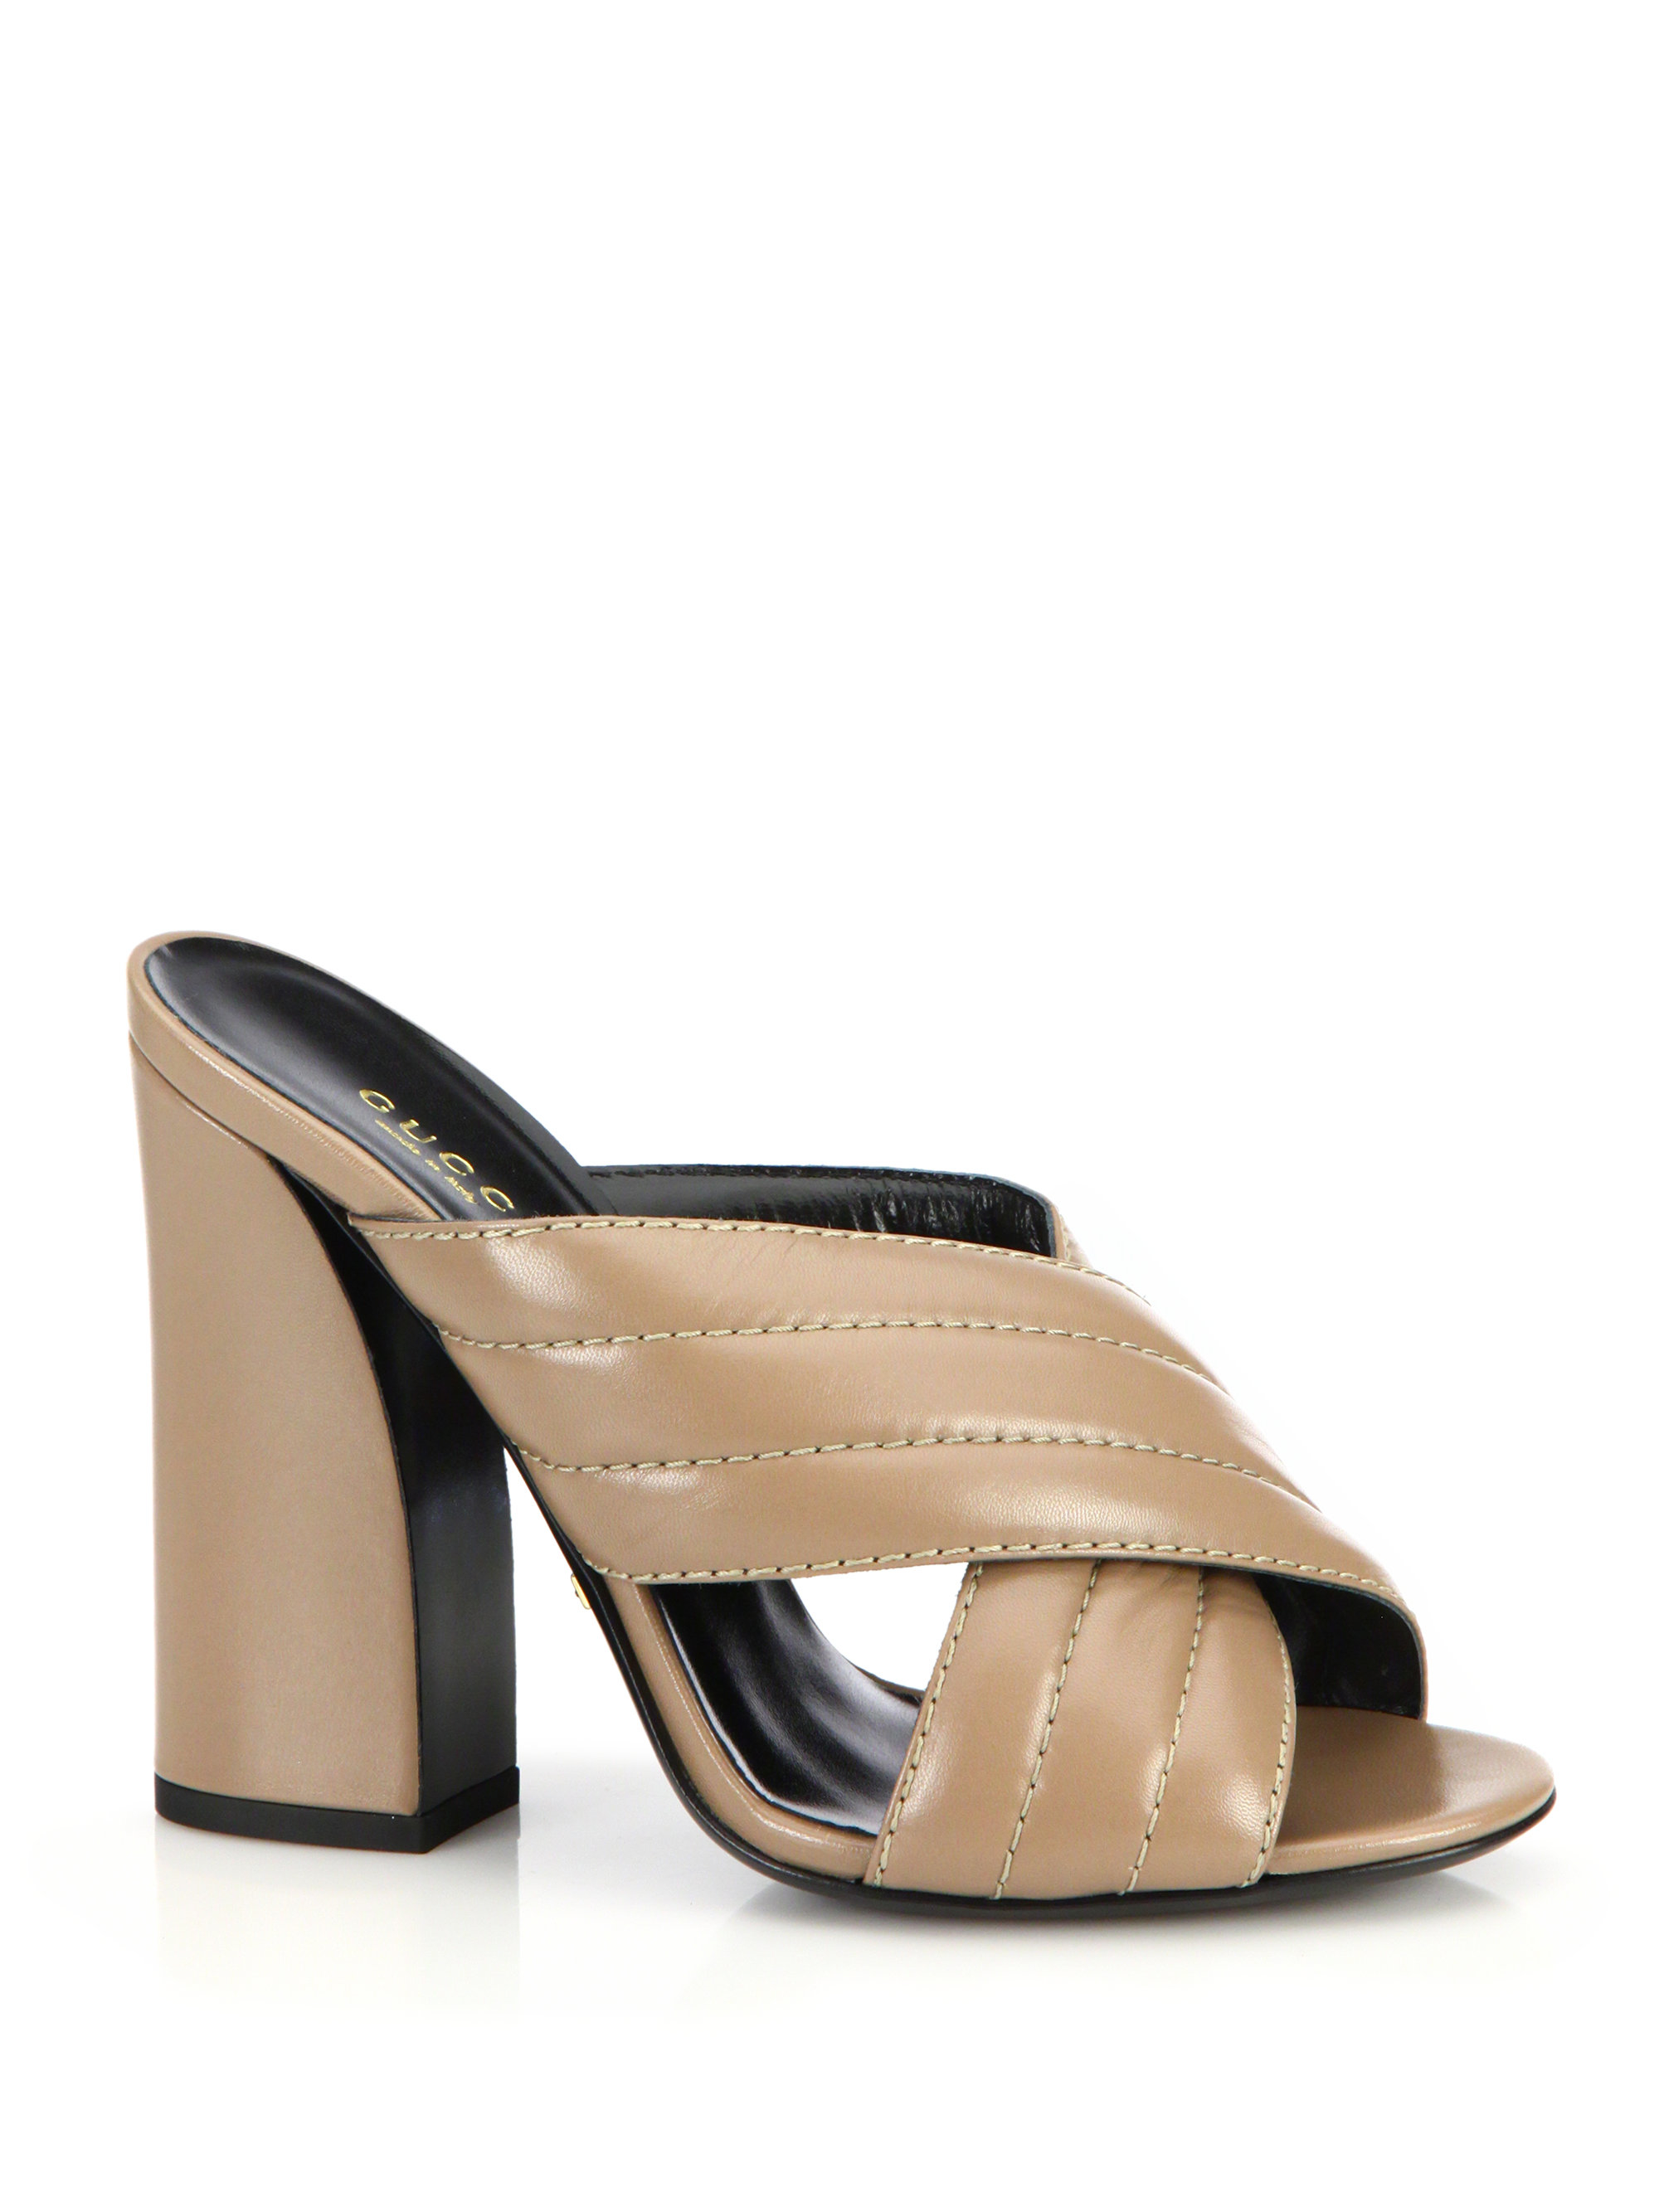 Gucci Webby Quilted Leather Mule Sandals In Natural Lyst